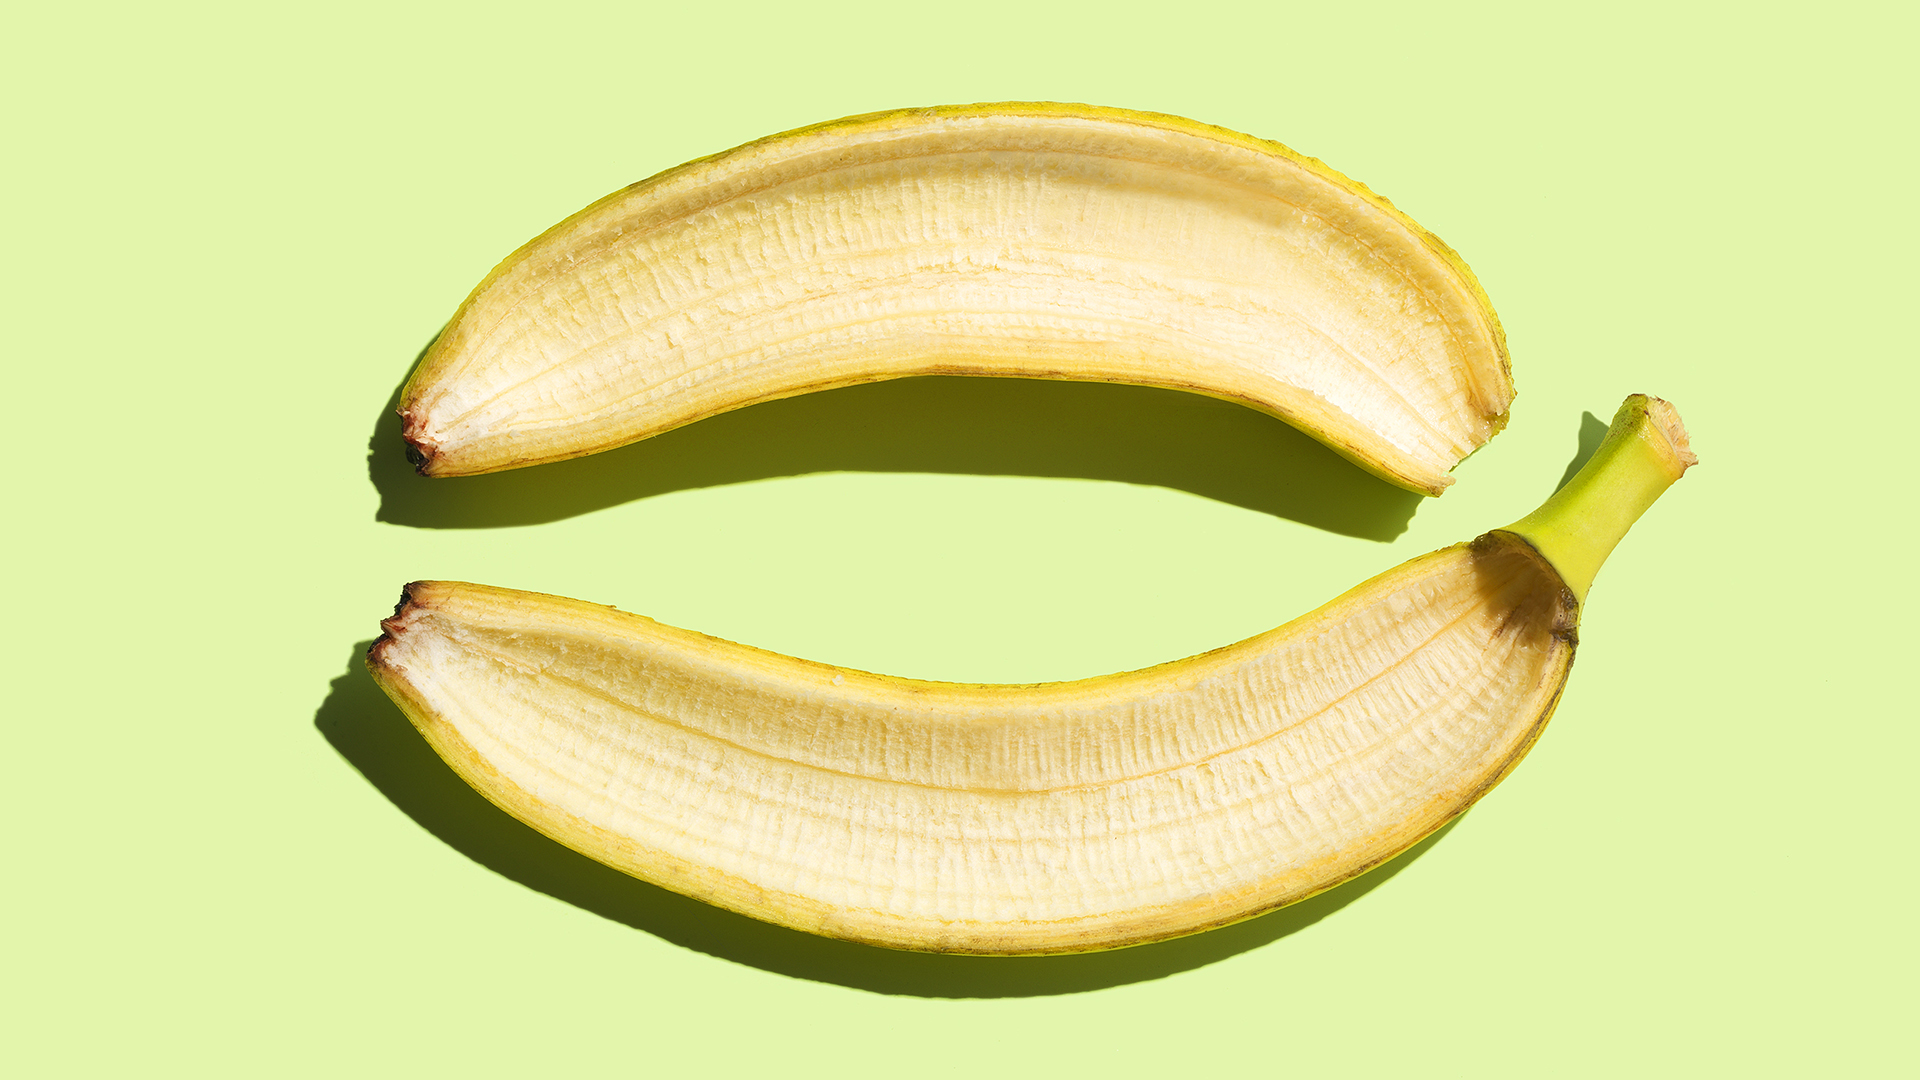 banana peel as shoe polish Turns out banana peels share a key ingredient of shoe polish (potassium) and they work wonders on dusty or scuffed leather just peel a ripe banana, wipe the inside of the soft peel on your shoe .